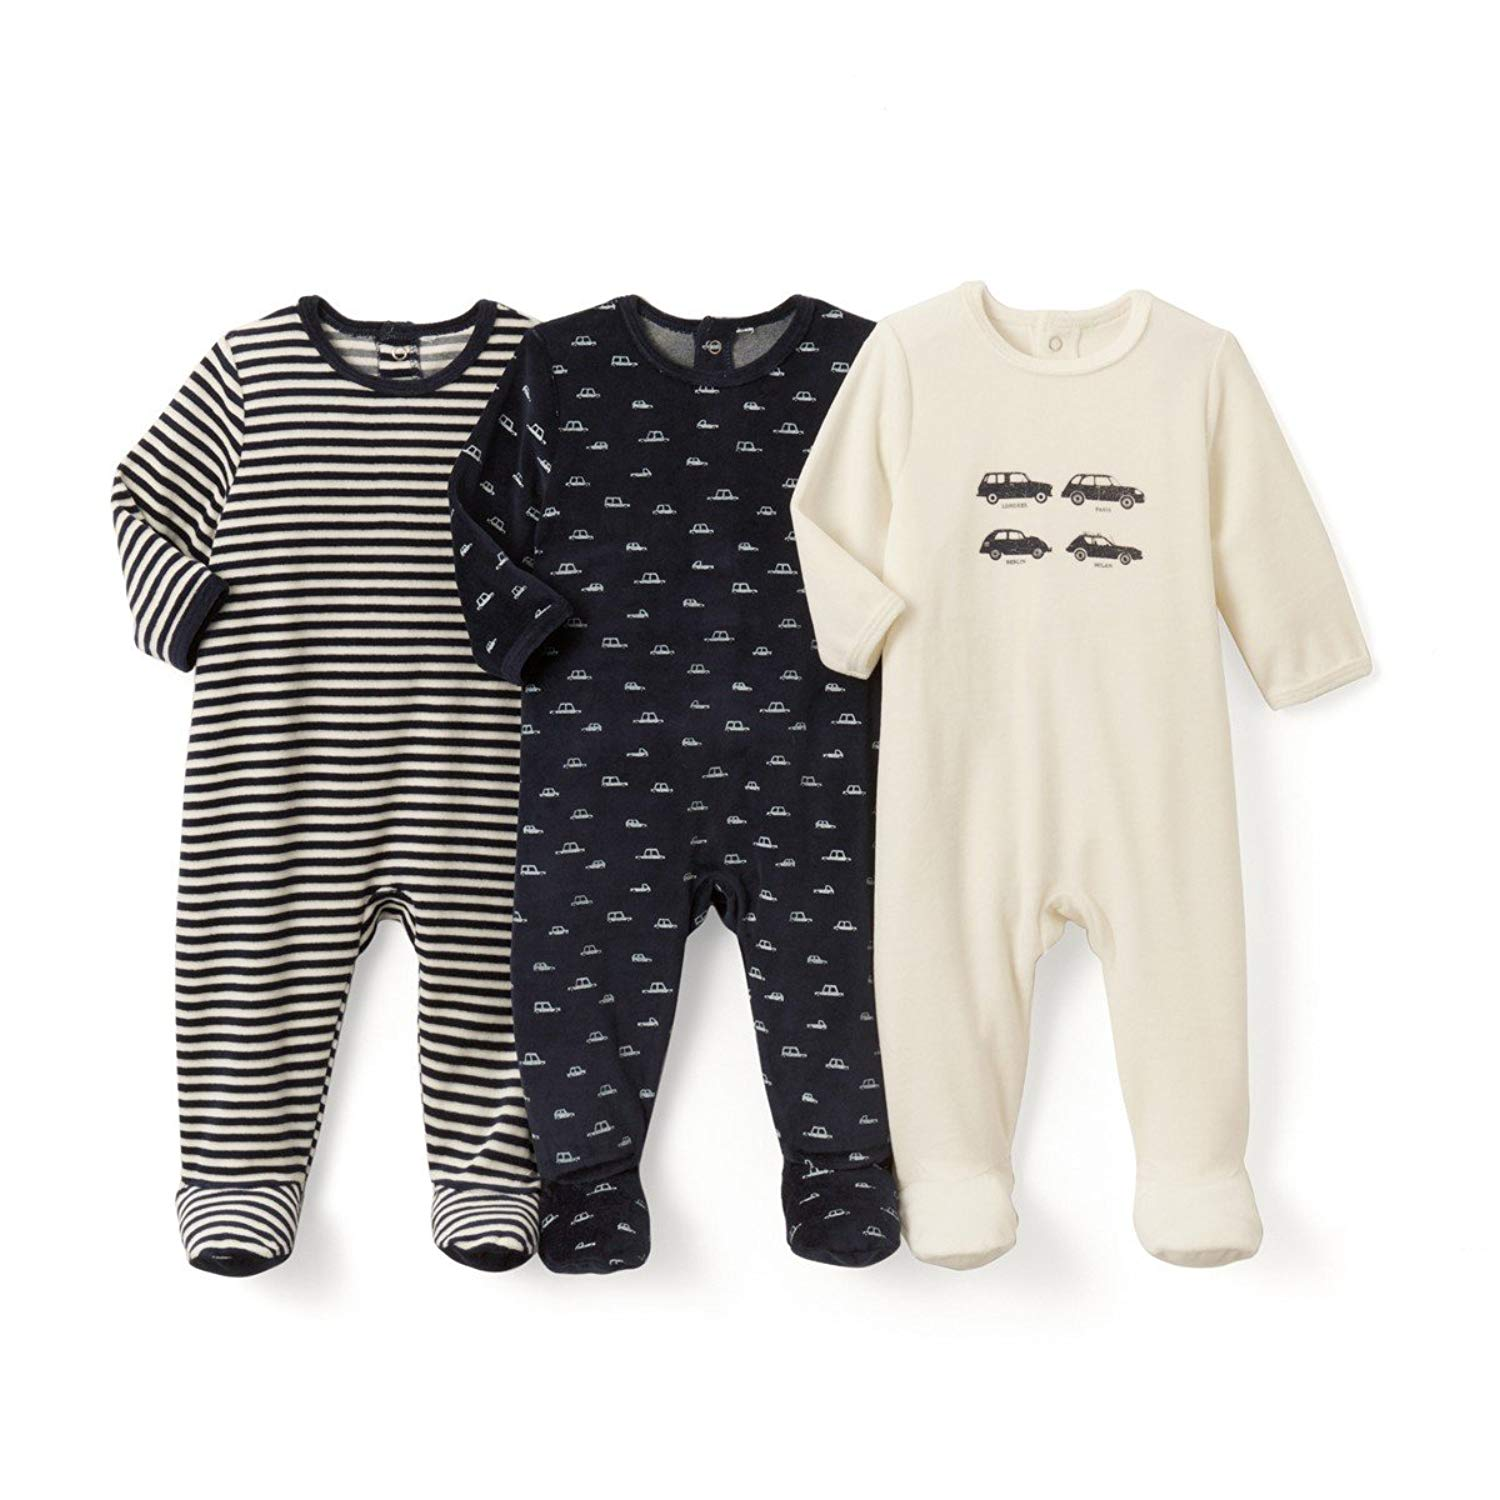 fafd104e5 Get Quotations · La Redoute Collections Big Boys Pack of 3 Printed  Sleepsuits, Birth-3 Years